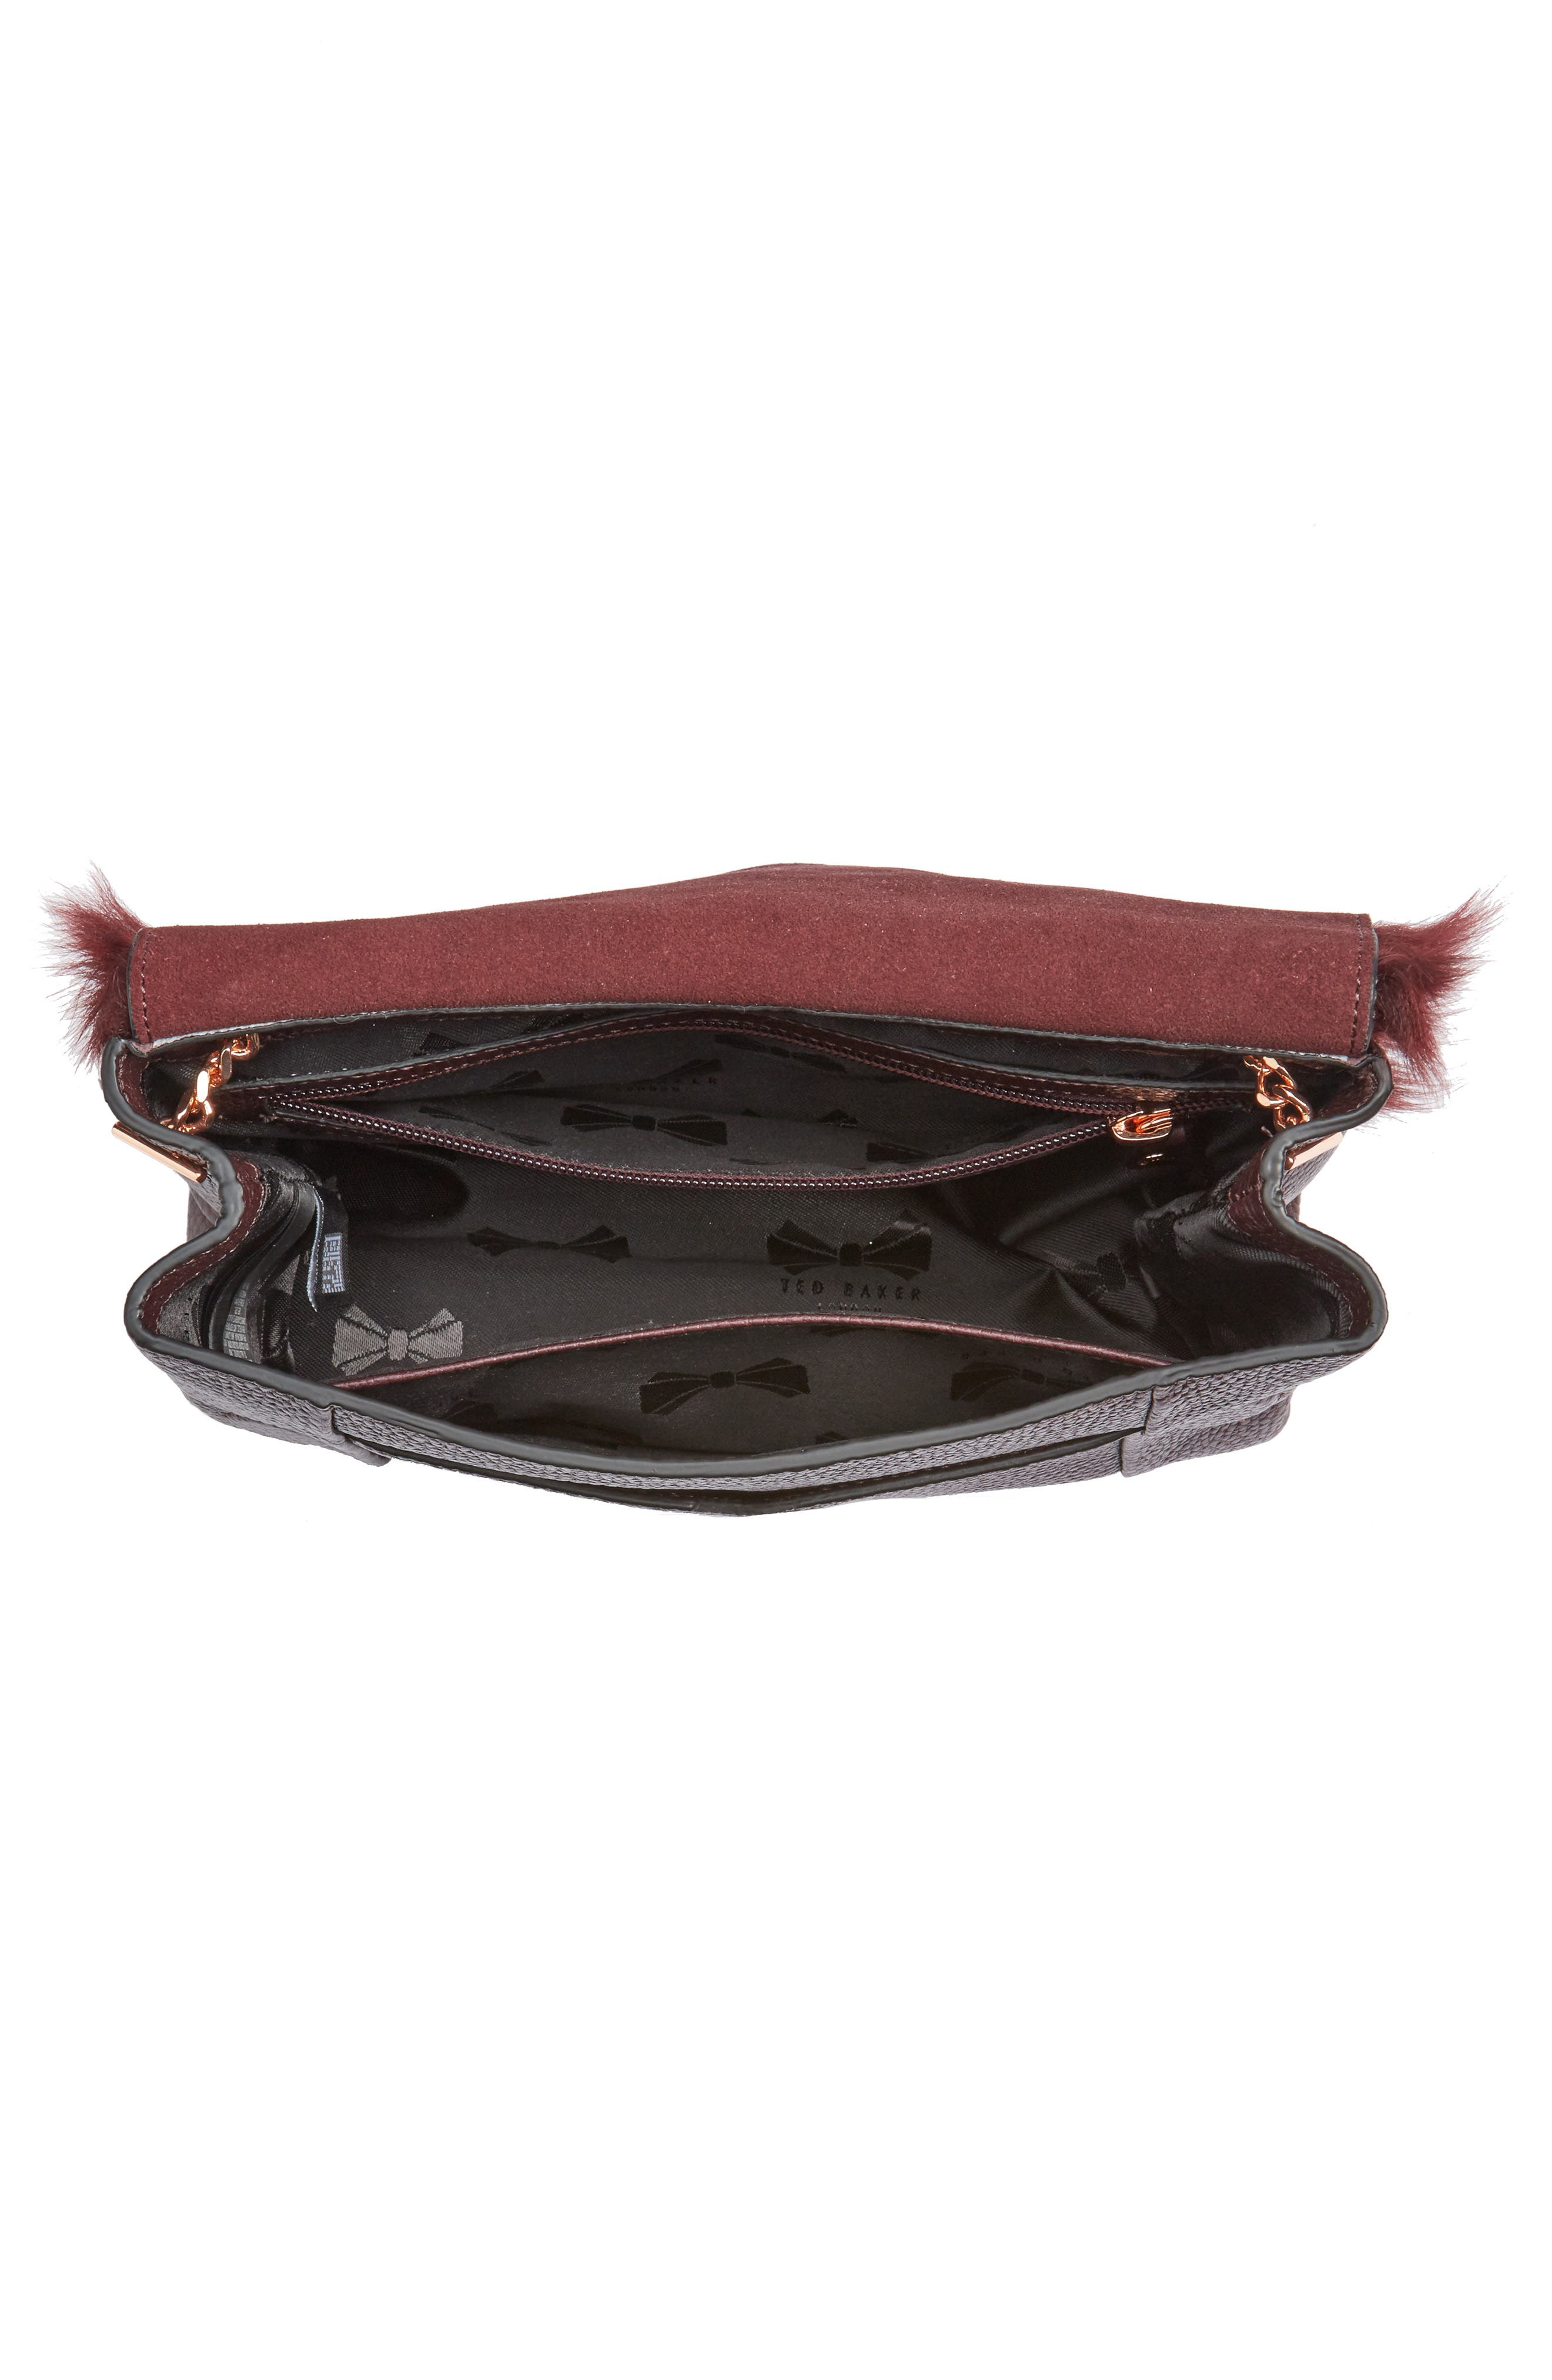 Alternate Image 3  - Ted Baker London Fuzzi Genuine Shearling & Leather Convertible Crossbody Bag